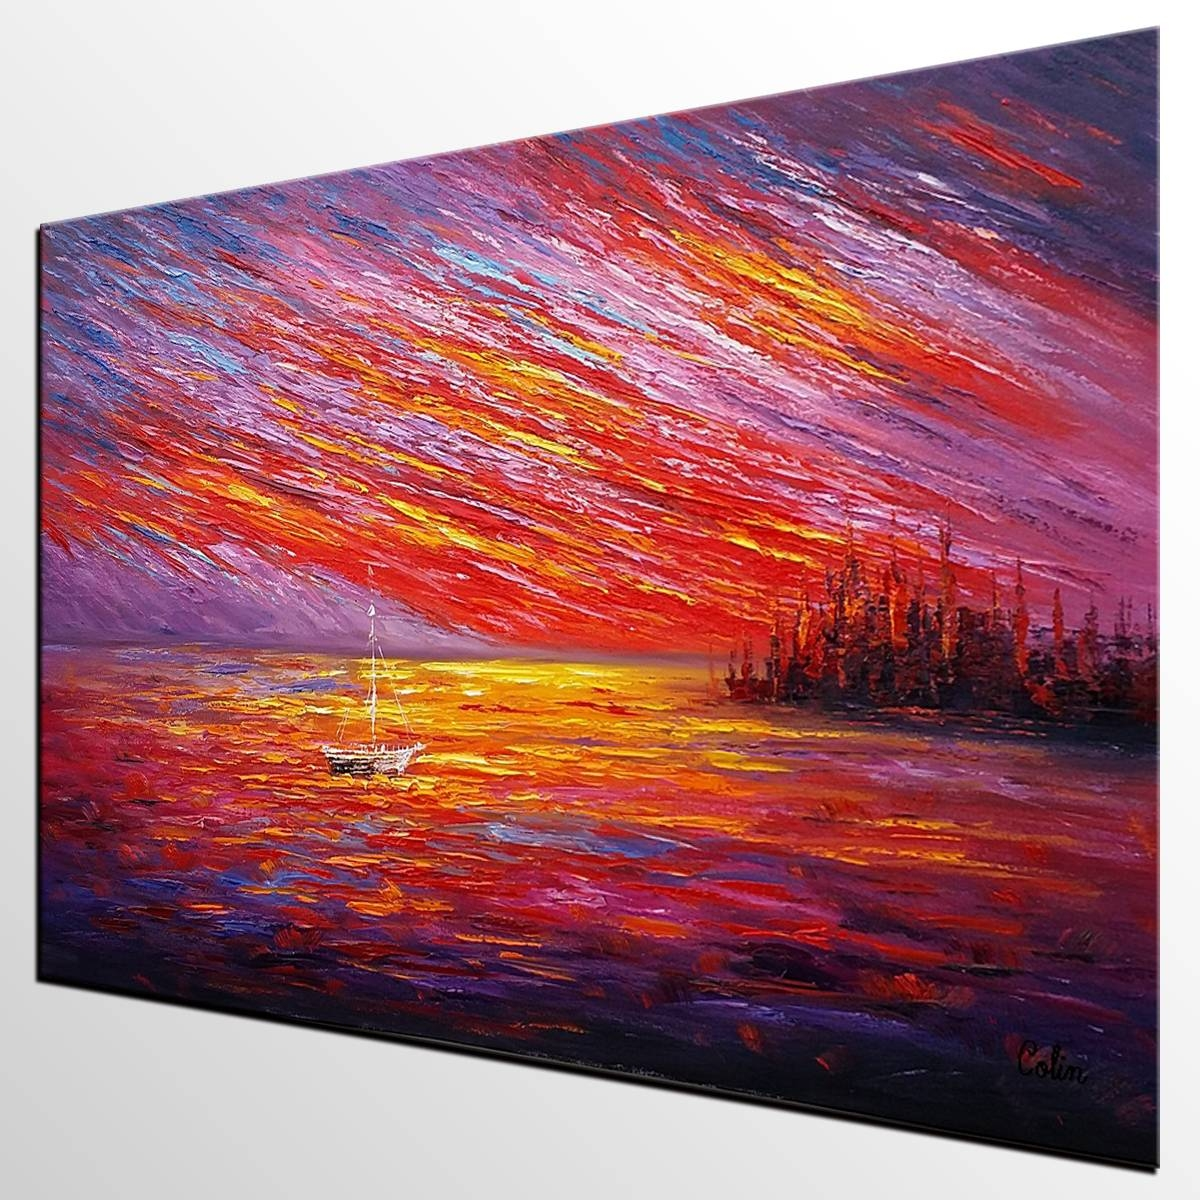 Oil Painting, Original Wall Art, Landscape Painting, Large Art Within Current Oil Painting Wall Art On Canvas (View 8 of 20)